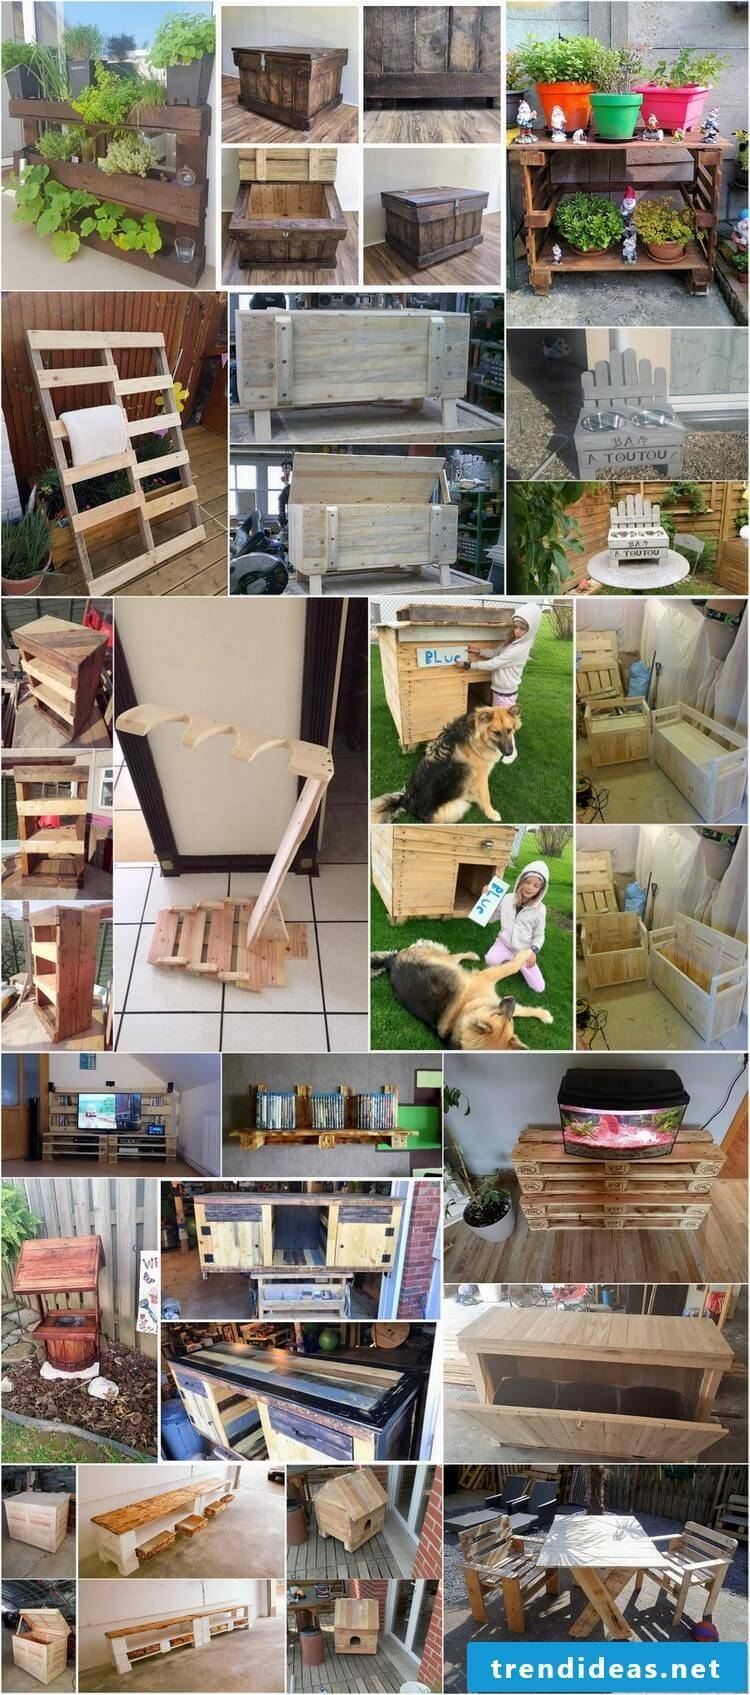 Garden furniture itself build from wood and europallets